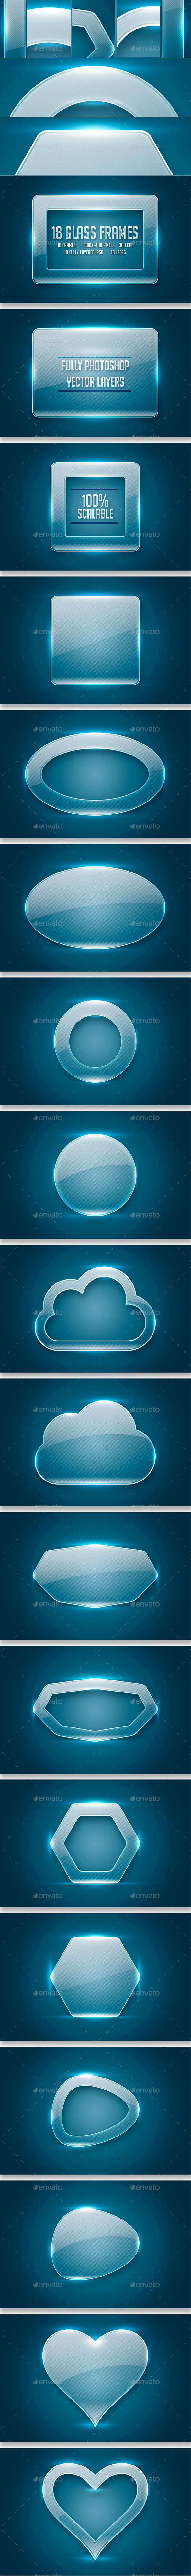 GraphicRiver Glass Frames 10119291